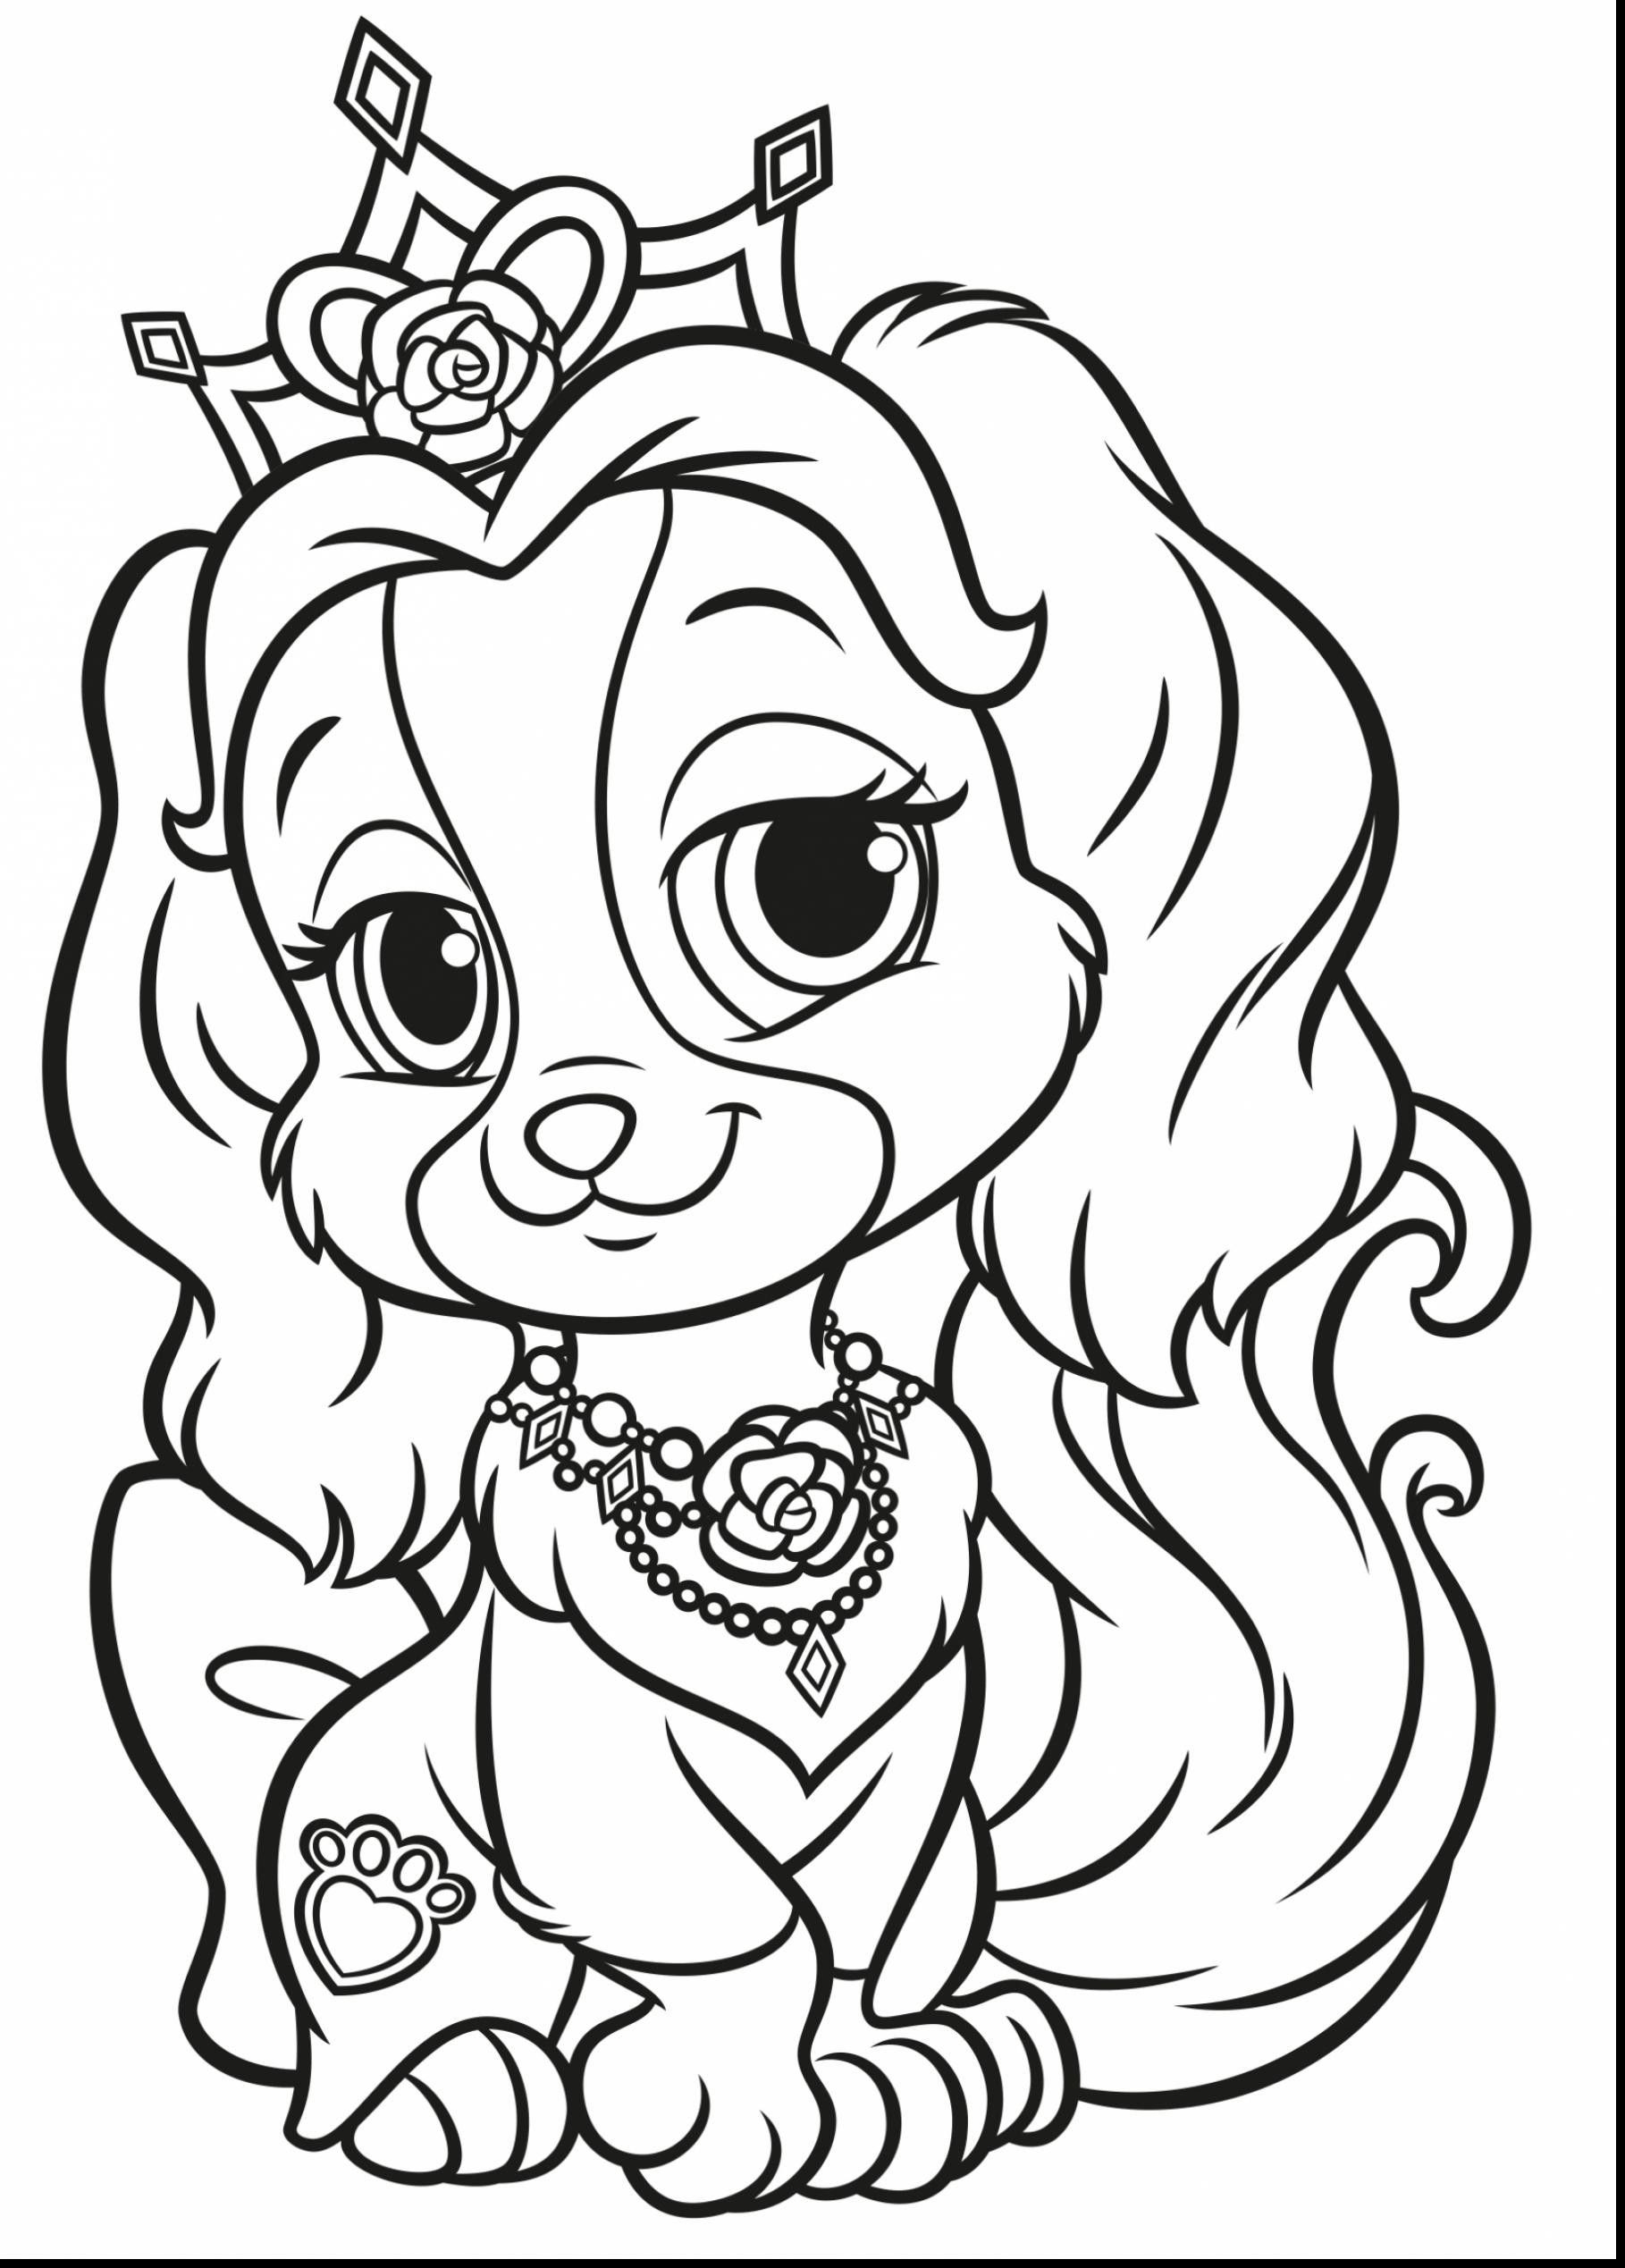 Princess Dog Coloring Page Youngandtae Com Princess Coloring Pages Dog Coloring Page Puppy Coloring Pages